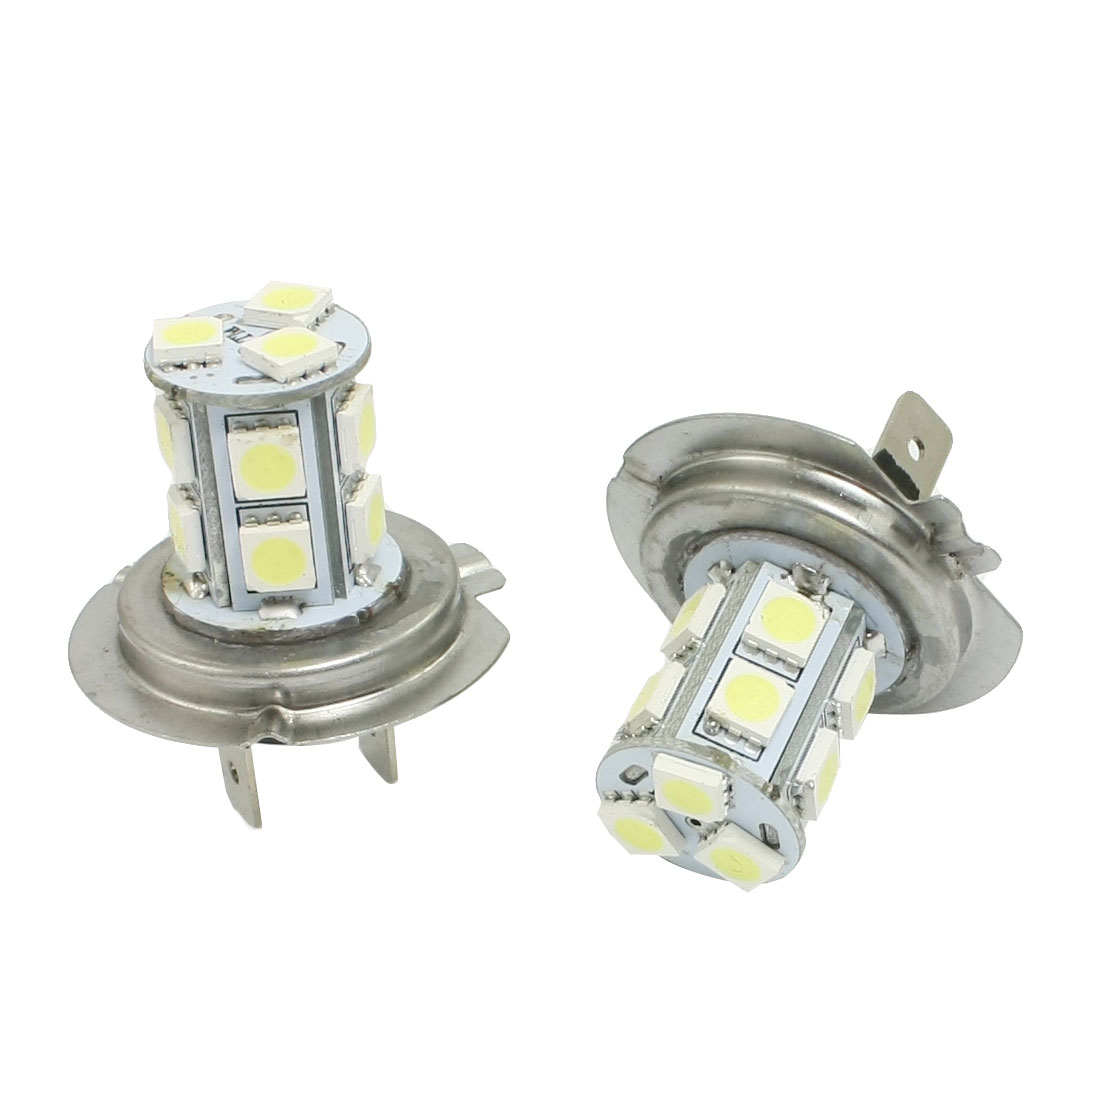 2 Pcs H7 White 13 5050 SMD LED Foglight Head Light Bulb Lamp